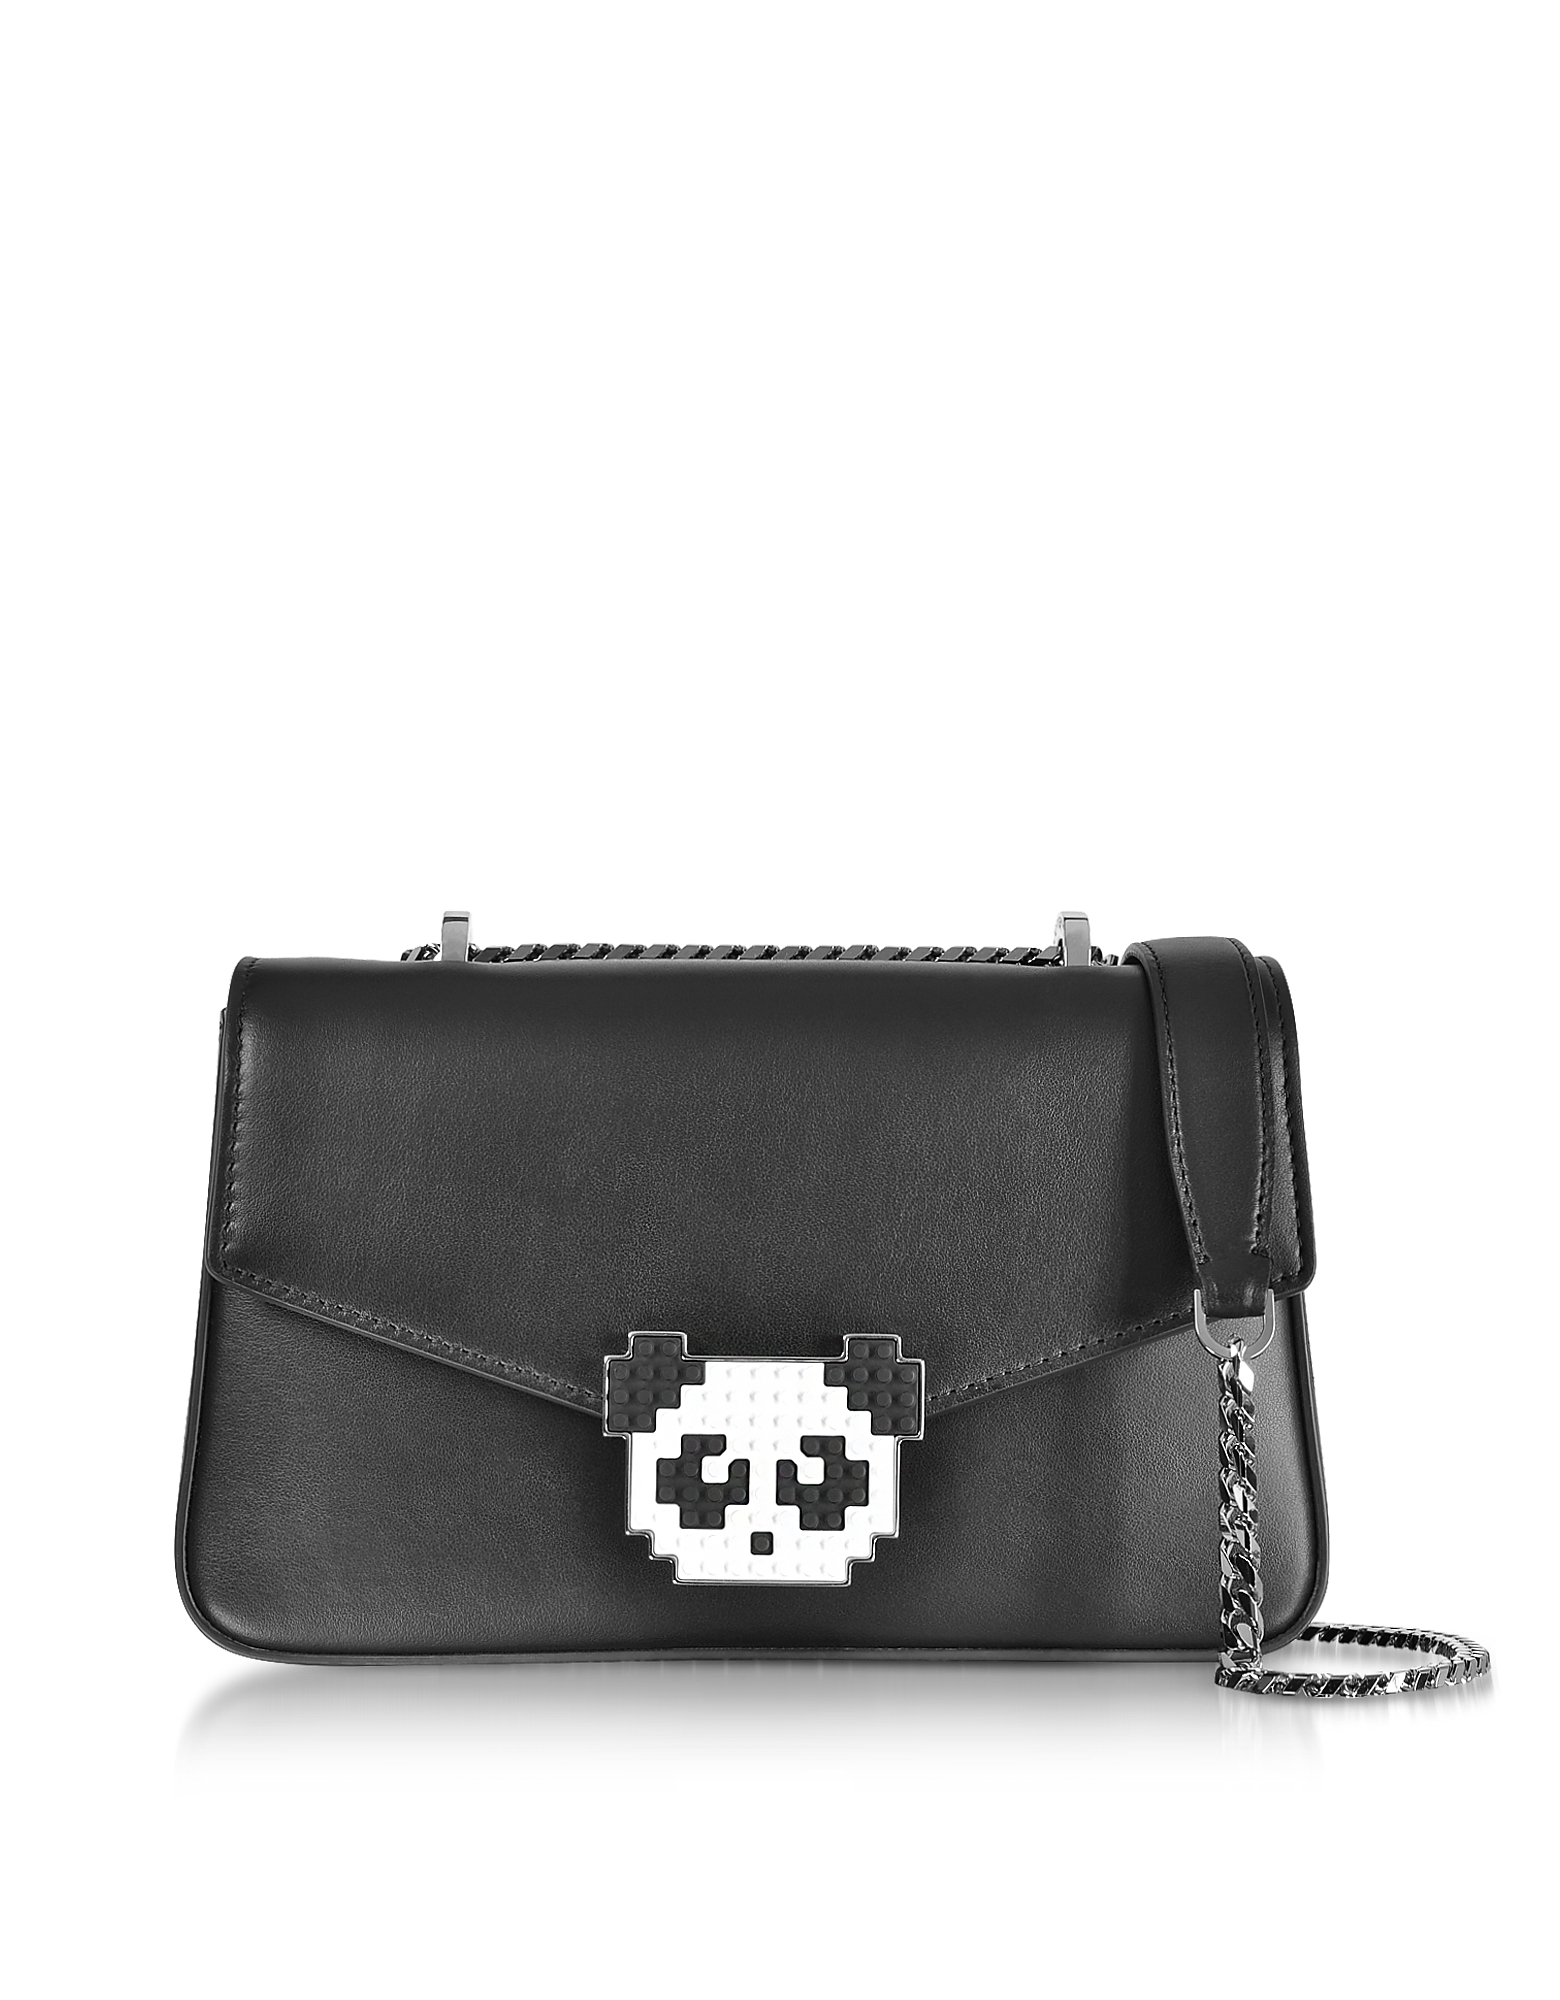 Les Petits Joueurs Handbags, Black Leather Ivy Metal Panda Shoulder Bag